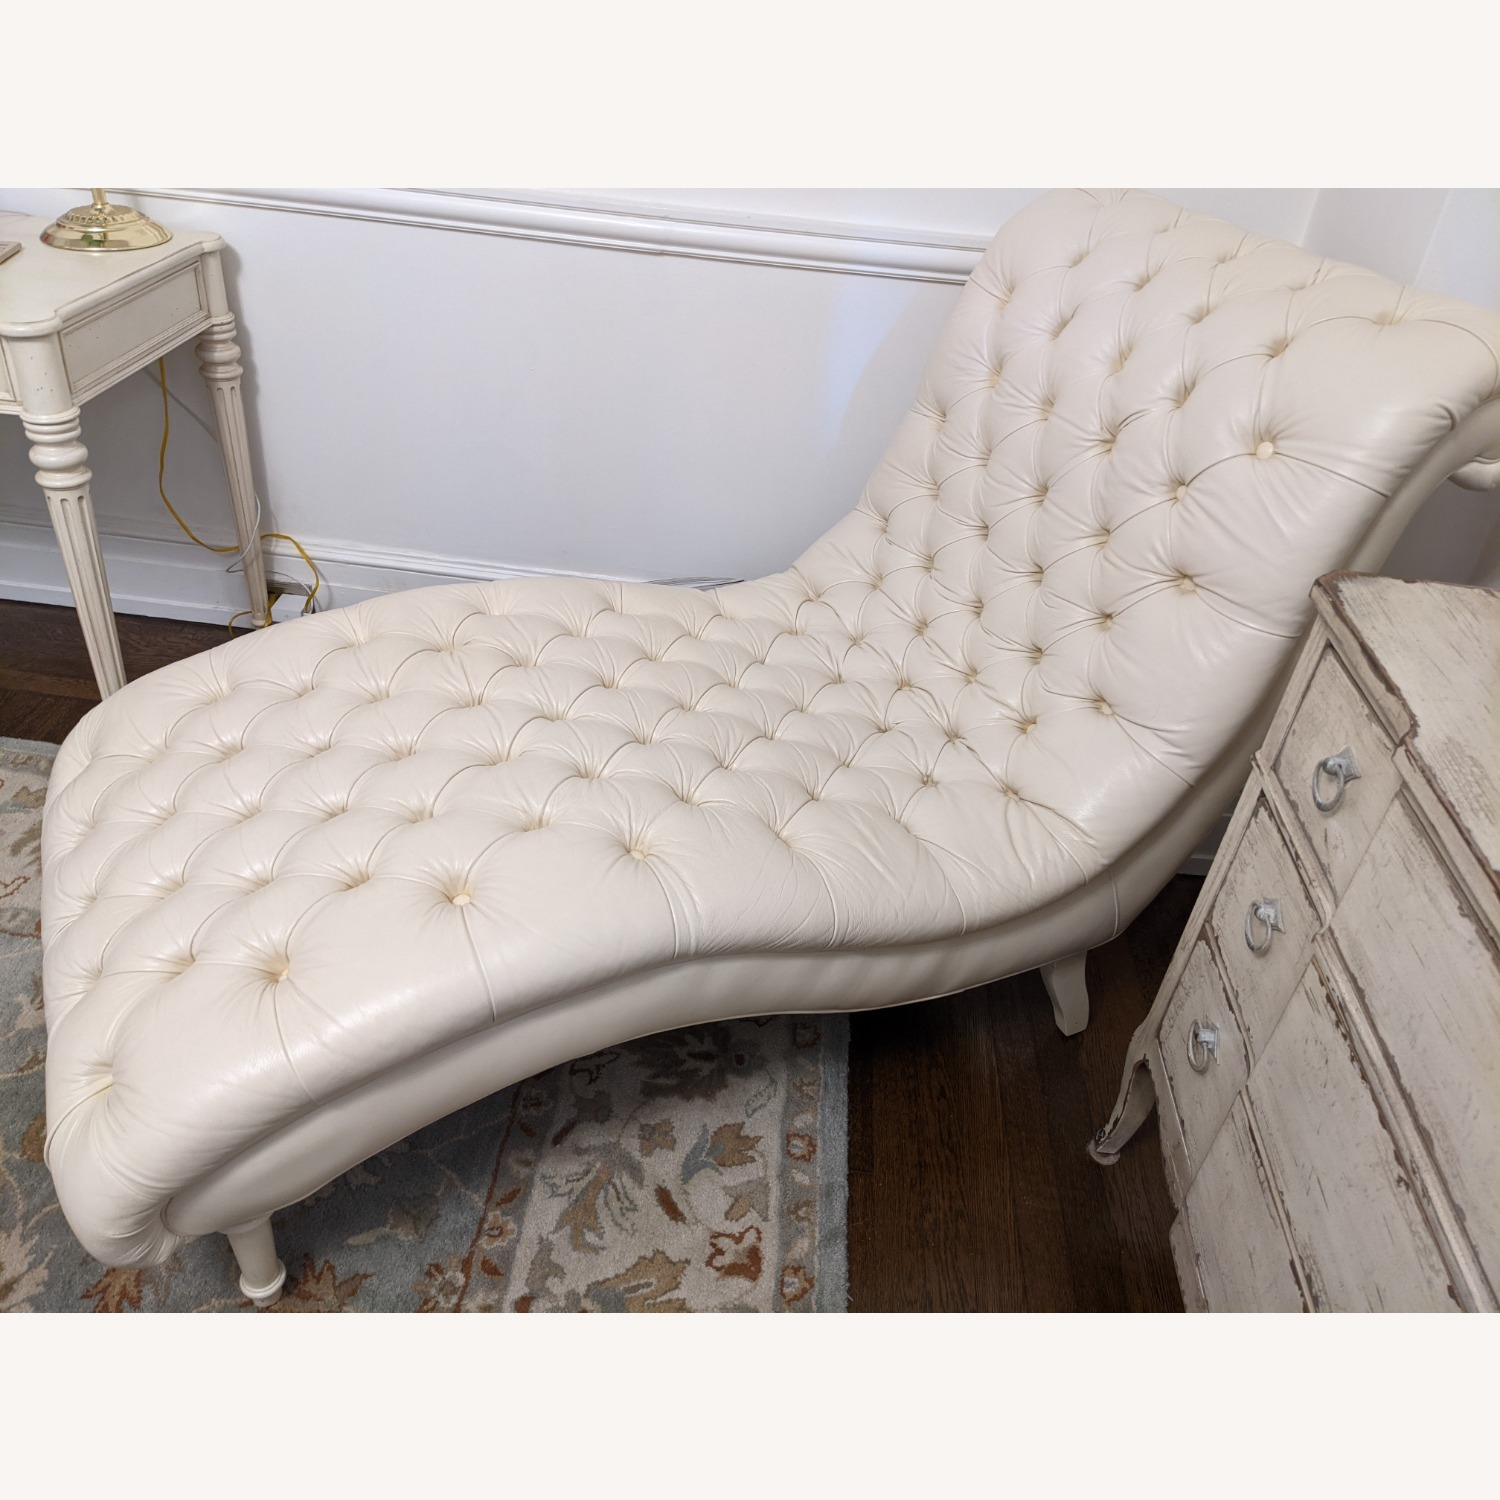 Ethan Allen Leather Chaise Long - image-5